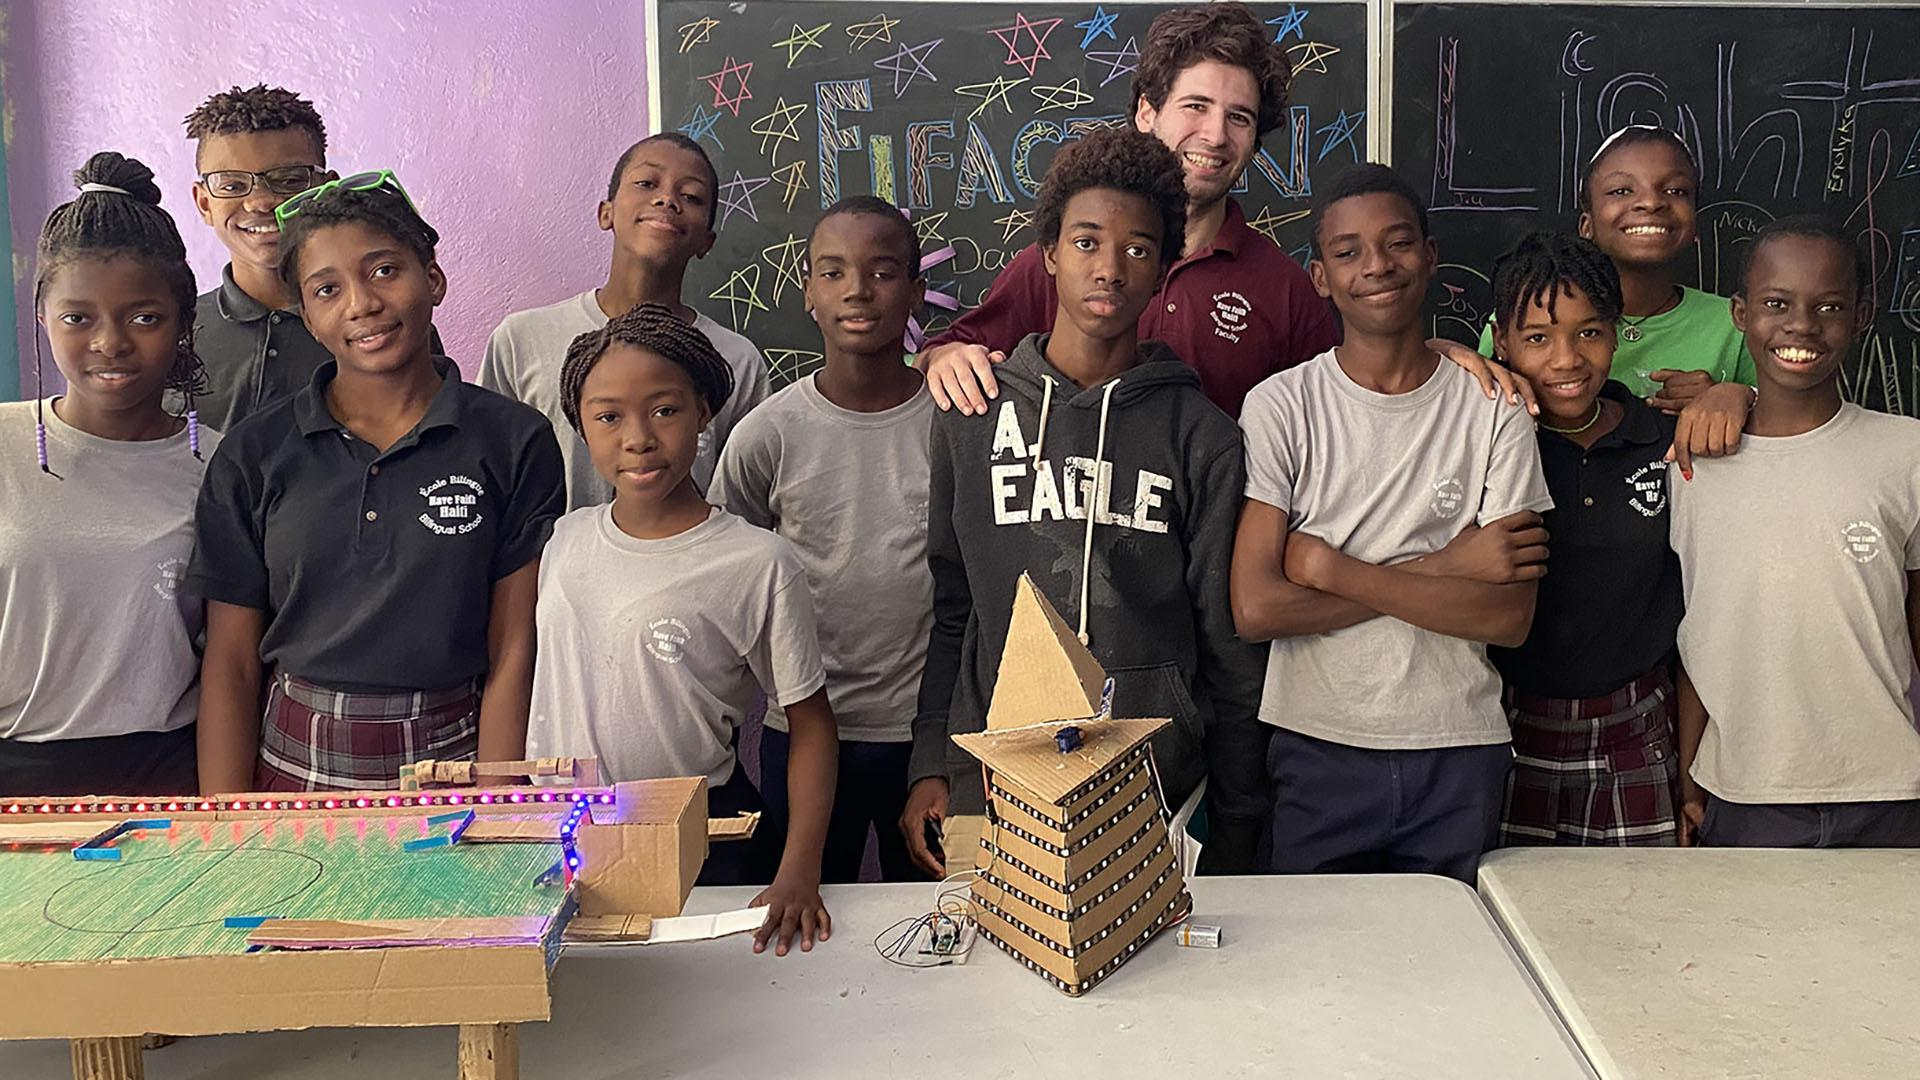 MIT student teaches toy design at orphanage in Haiti